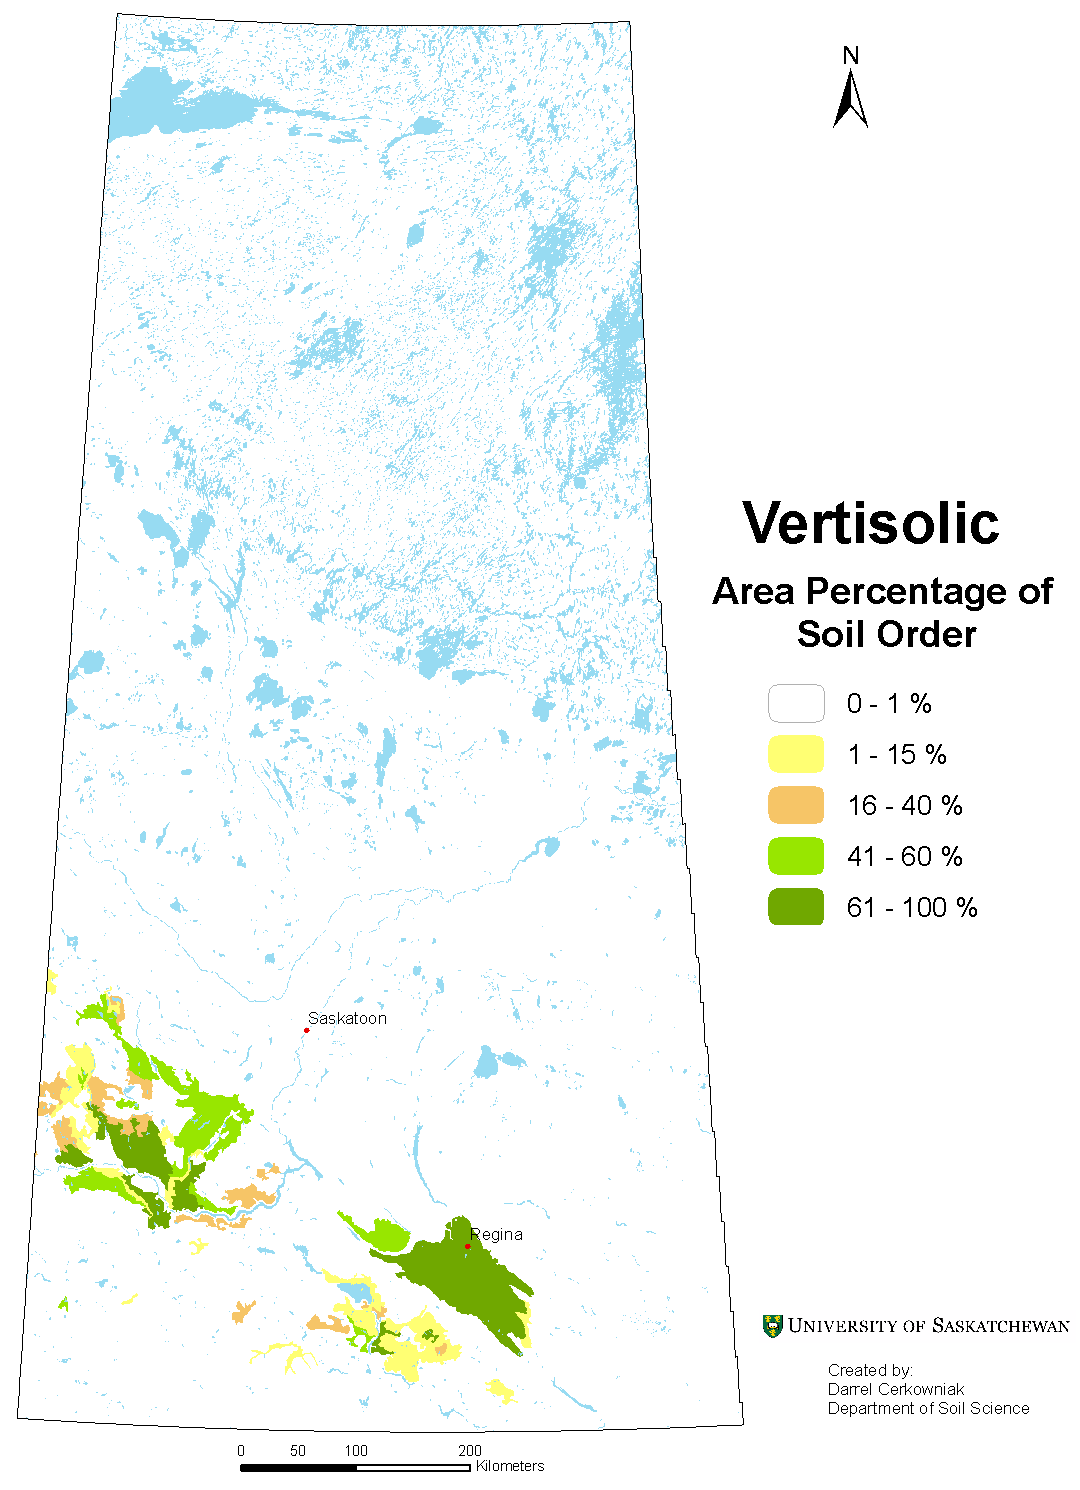 Distribution of Vertisolic soils in Saskatchewan